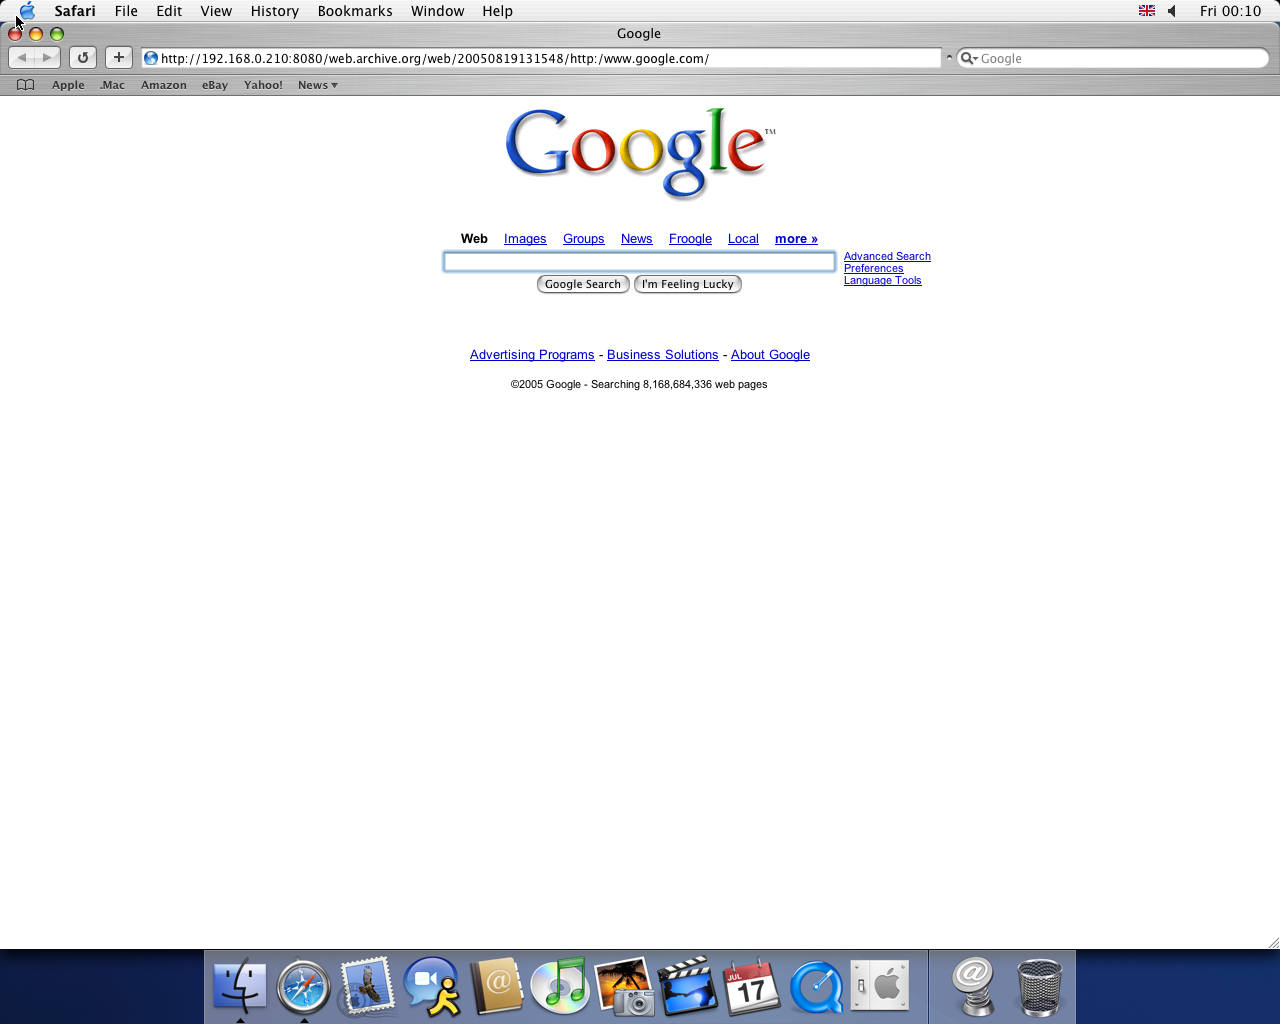 OS X 10.3 PPC with Safari 1.1 displaying a page from Google.com archived at August 19, 2005 at 13:15:48